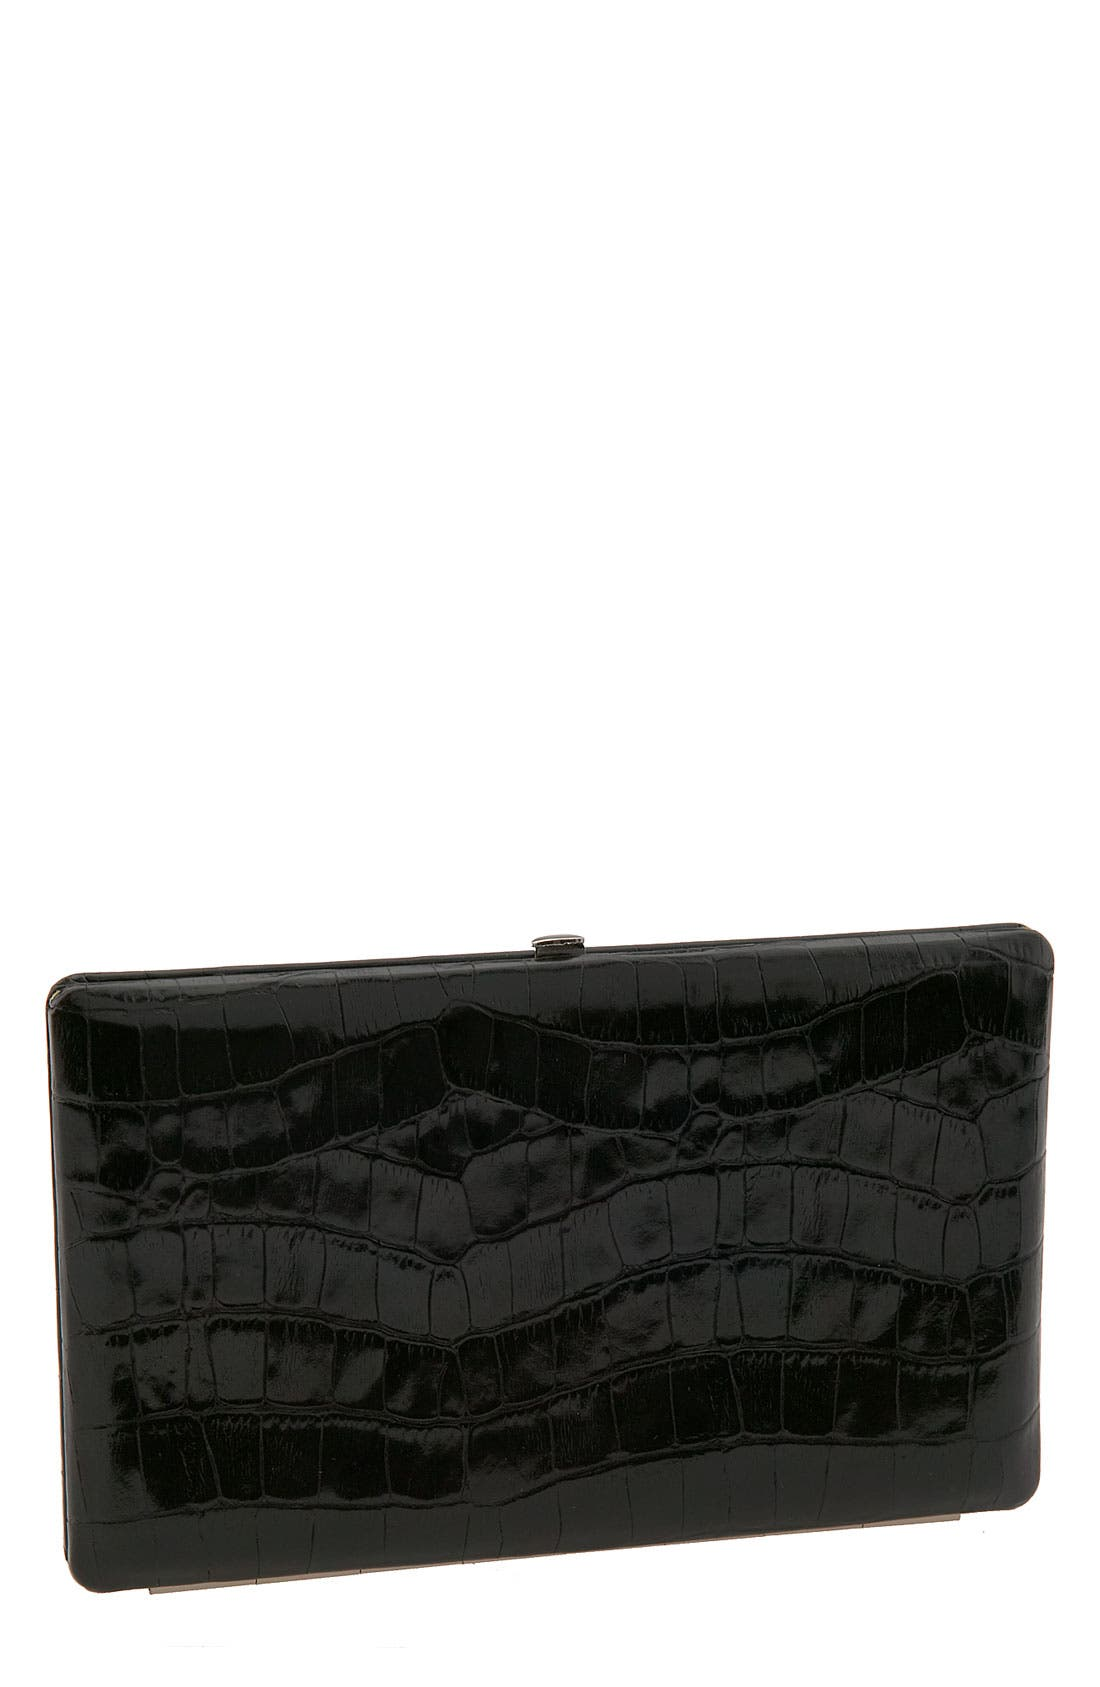 Full Frame Clutch Wallet,                             Main thumbnail 1, color,                             001